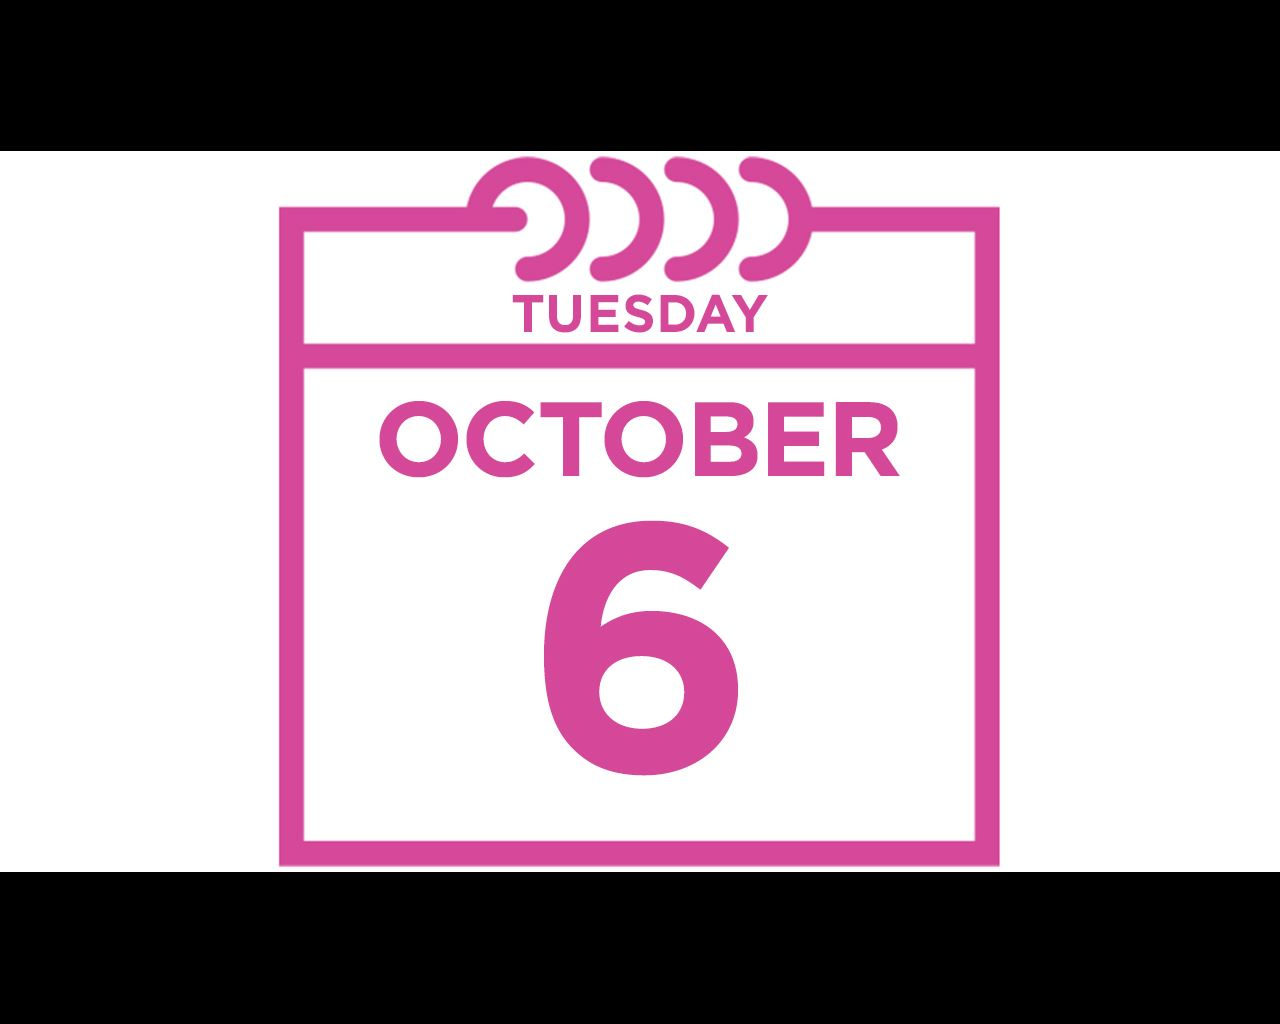 tuesday october 6